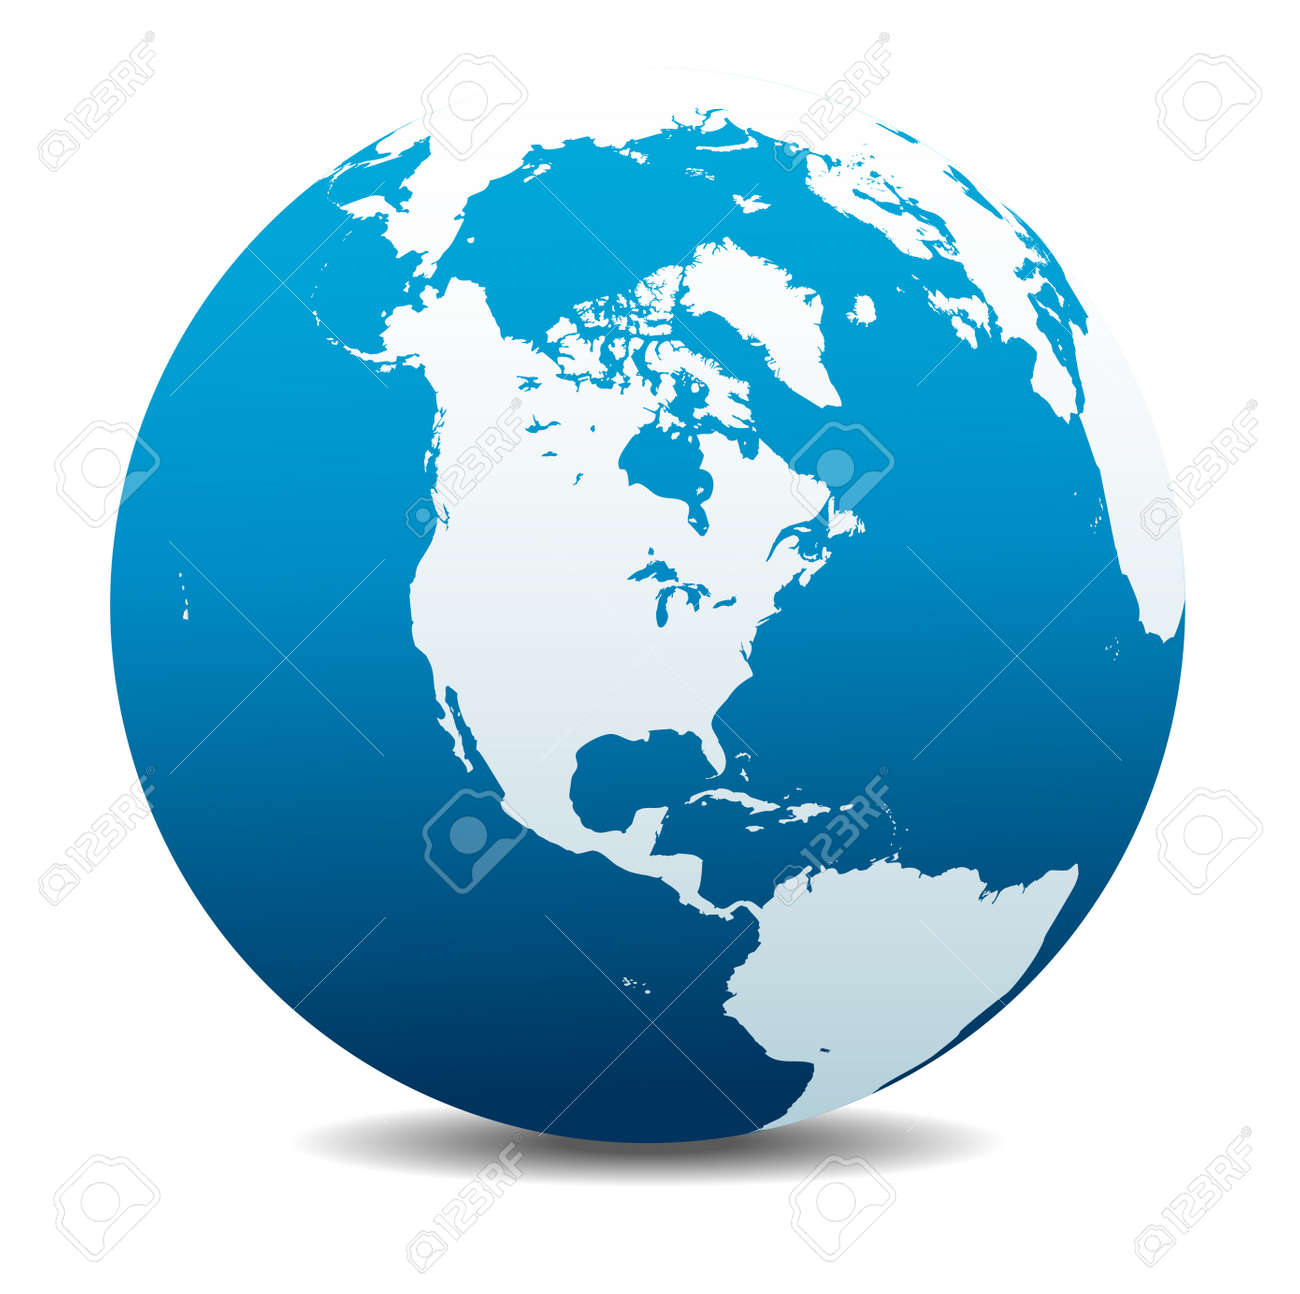 North, South, and Central AMERICA, Global World - 48970297